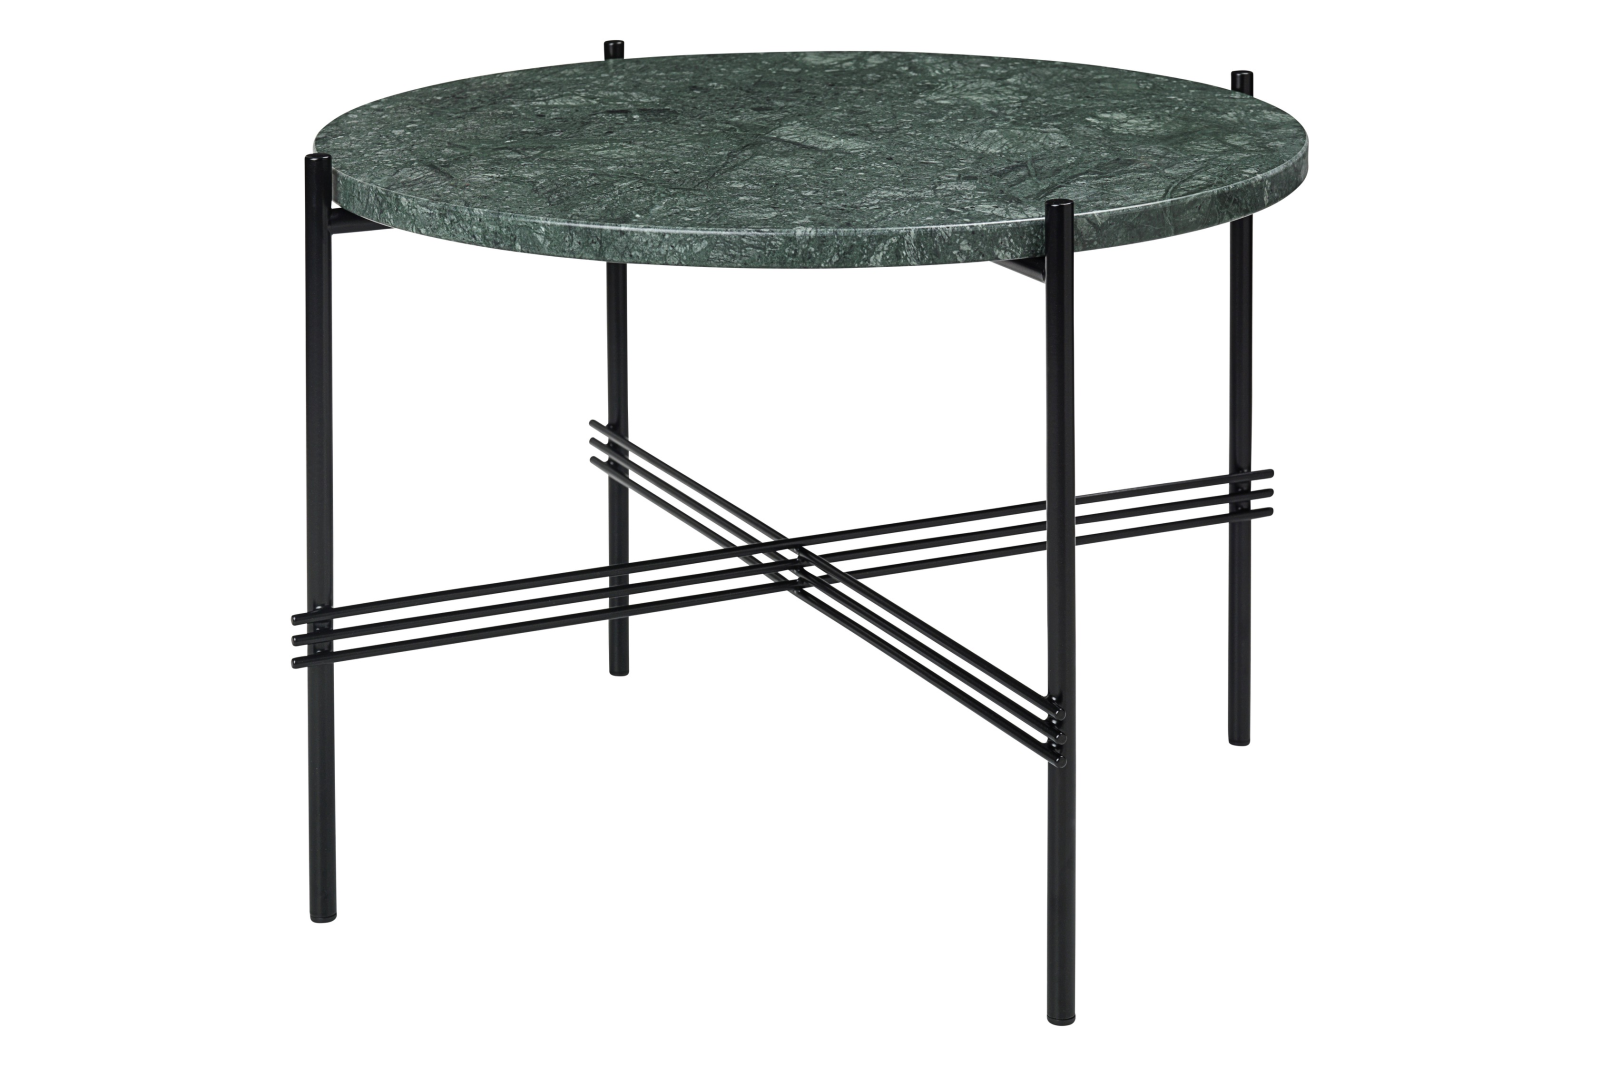 TS Round Coffee Table with Marble Top in Black Frame Gubi Marble Verde Guatemala, Gubi Metal Black,